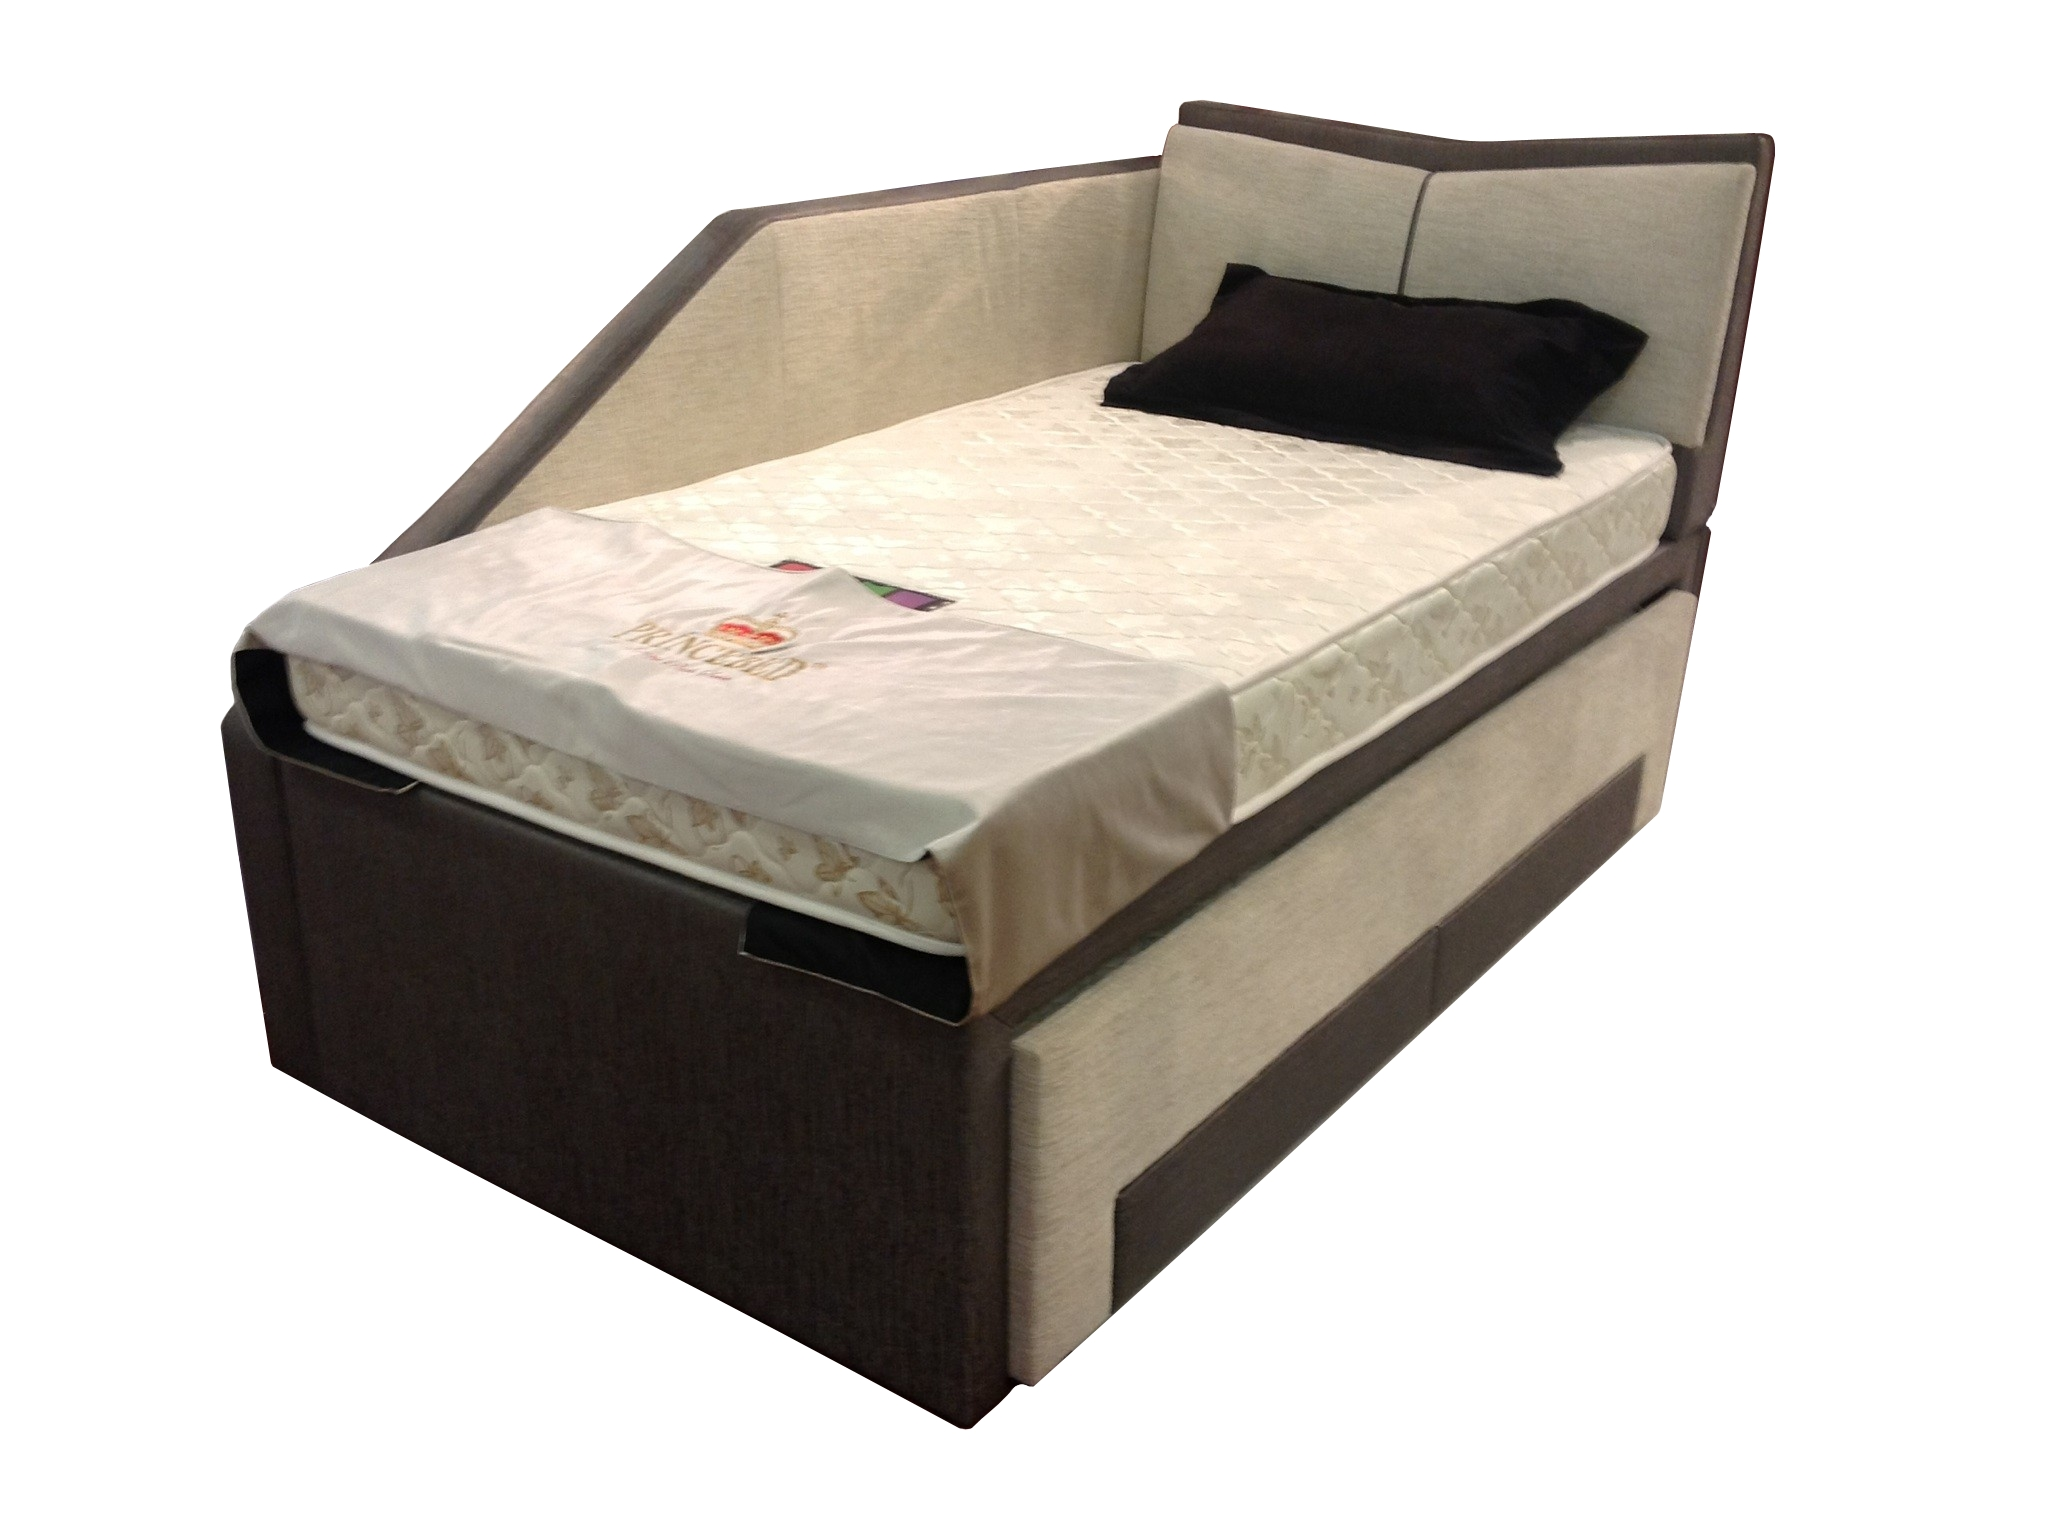 Zion Junior Pull Out Bed